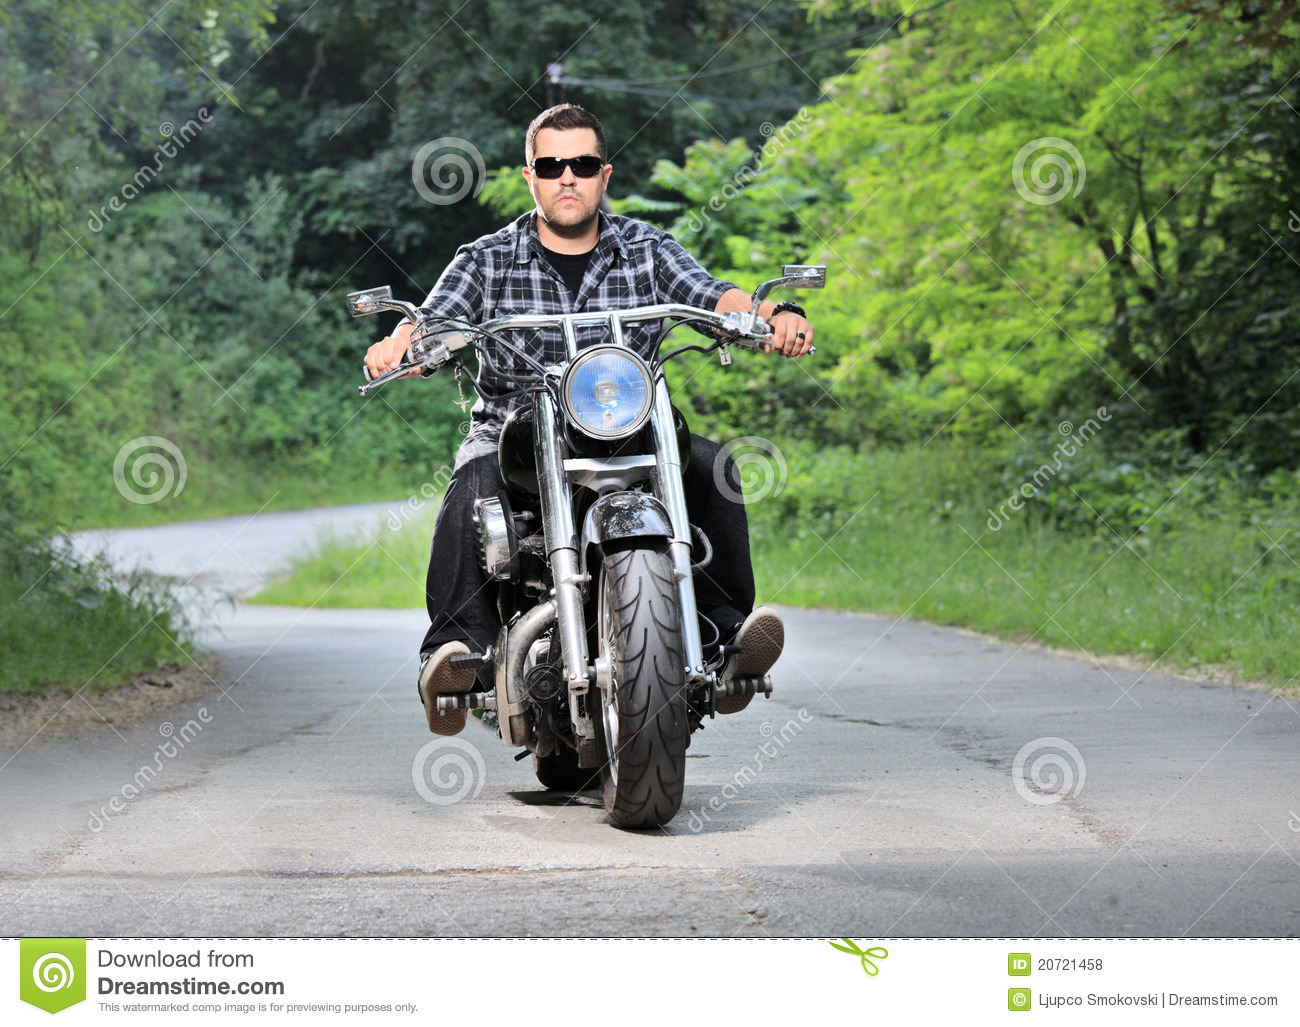 Motorcycle Insurance For Older Riders